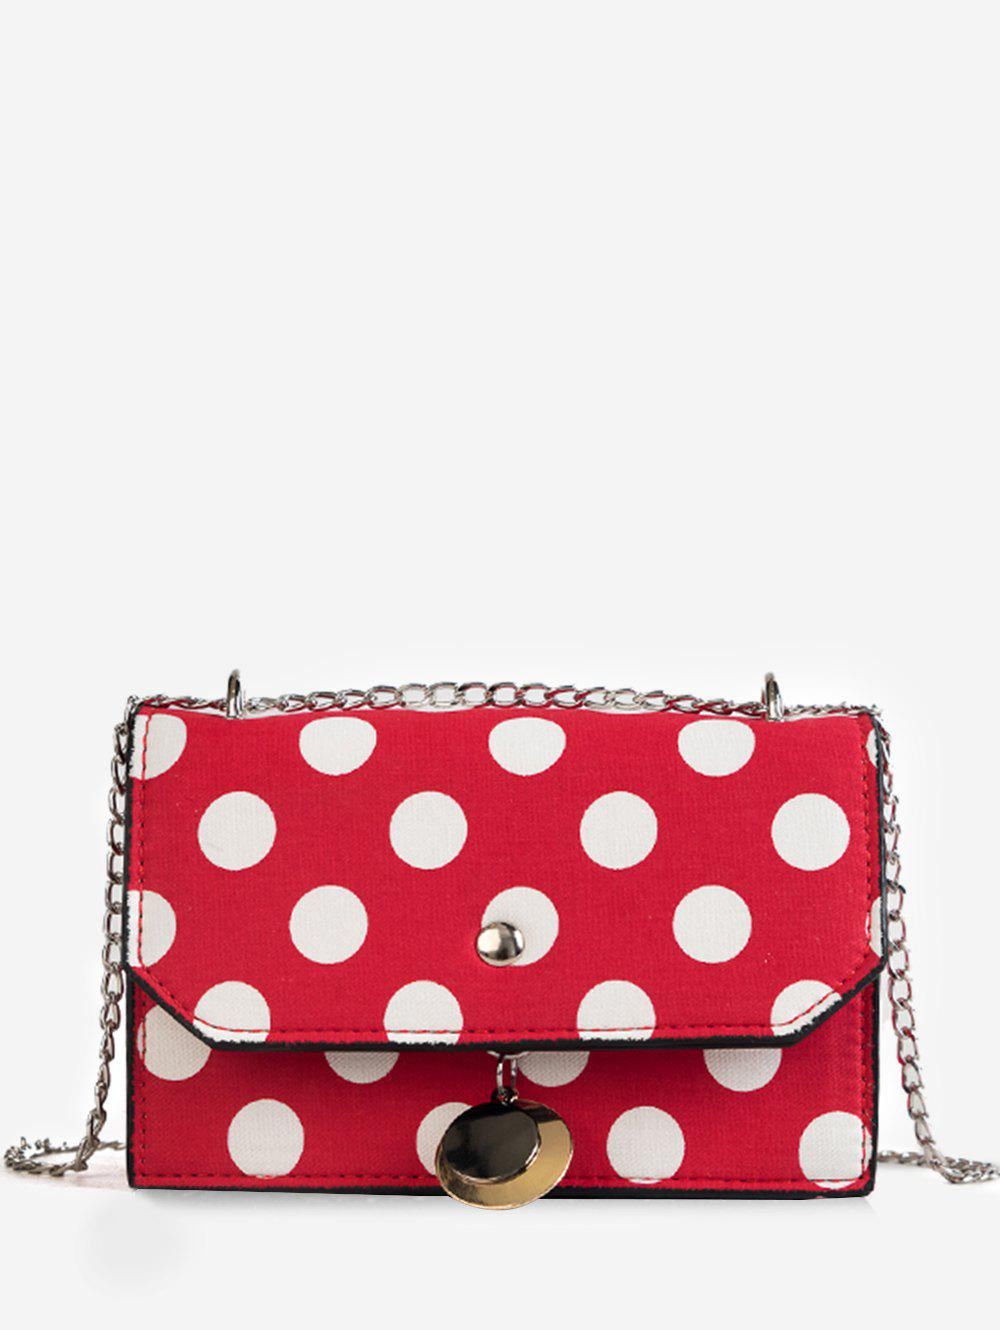 Polka Dot Flapped Metal Chain Crossbody Bag - RED